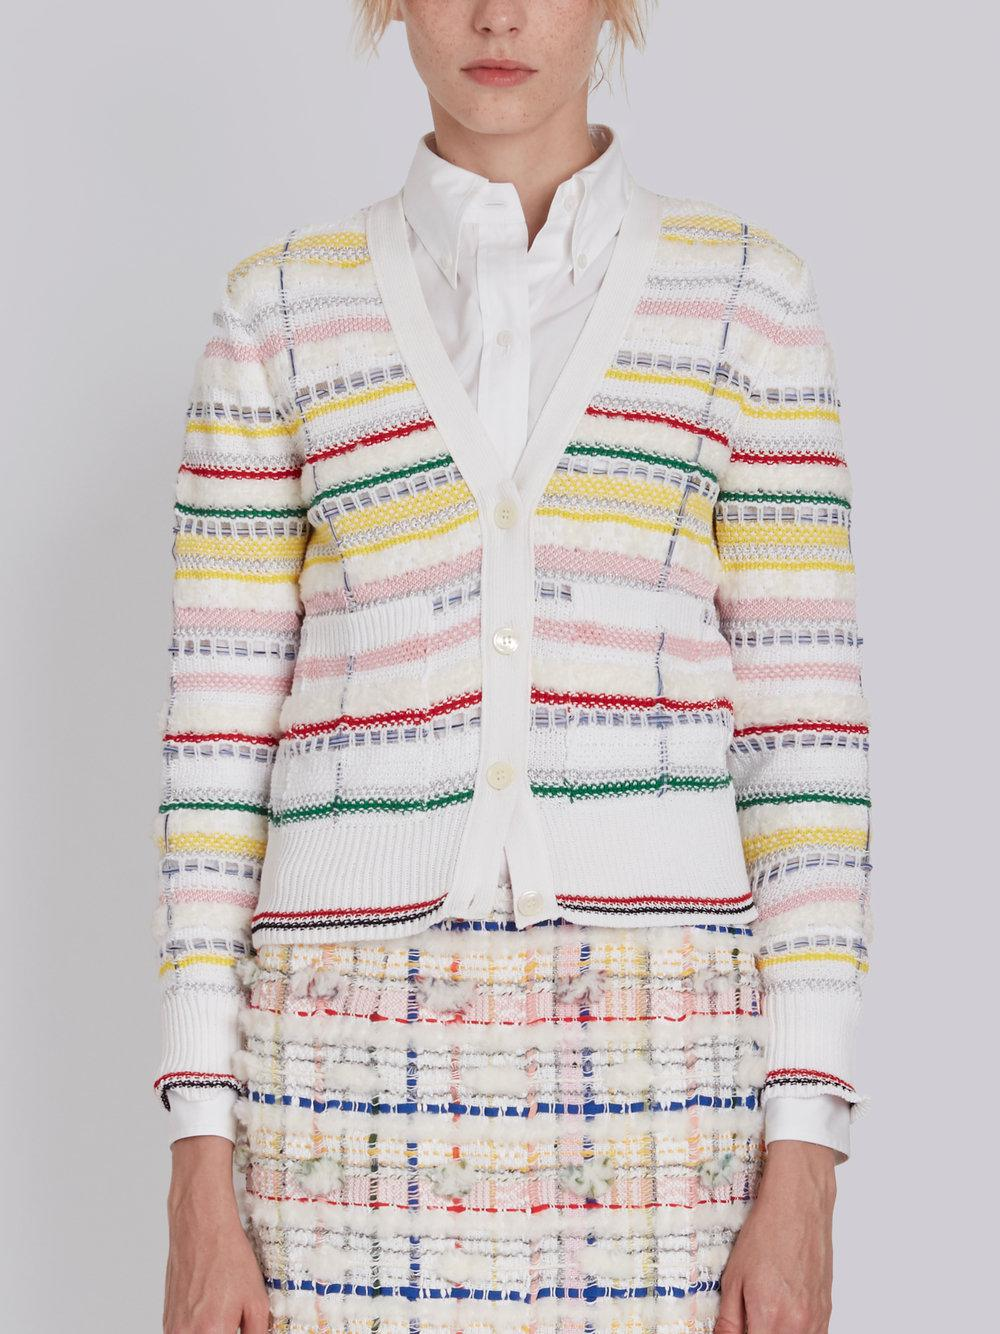 V-neck Cardigan With Tipping Stripe In Cotton Lurex Knit Tweed - Multicolour Thom Browne Discount Extremely Cheap Sale The Cheapest Buy Cheap 2018 New Clearance Store Sale Official Site P5sxdGeNBc